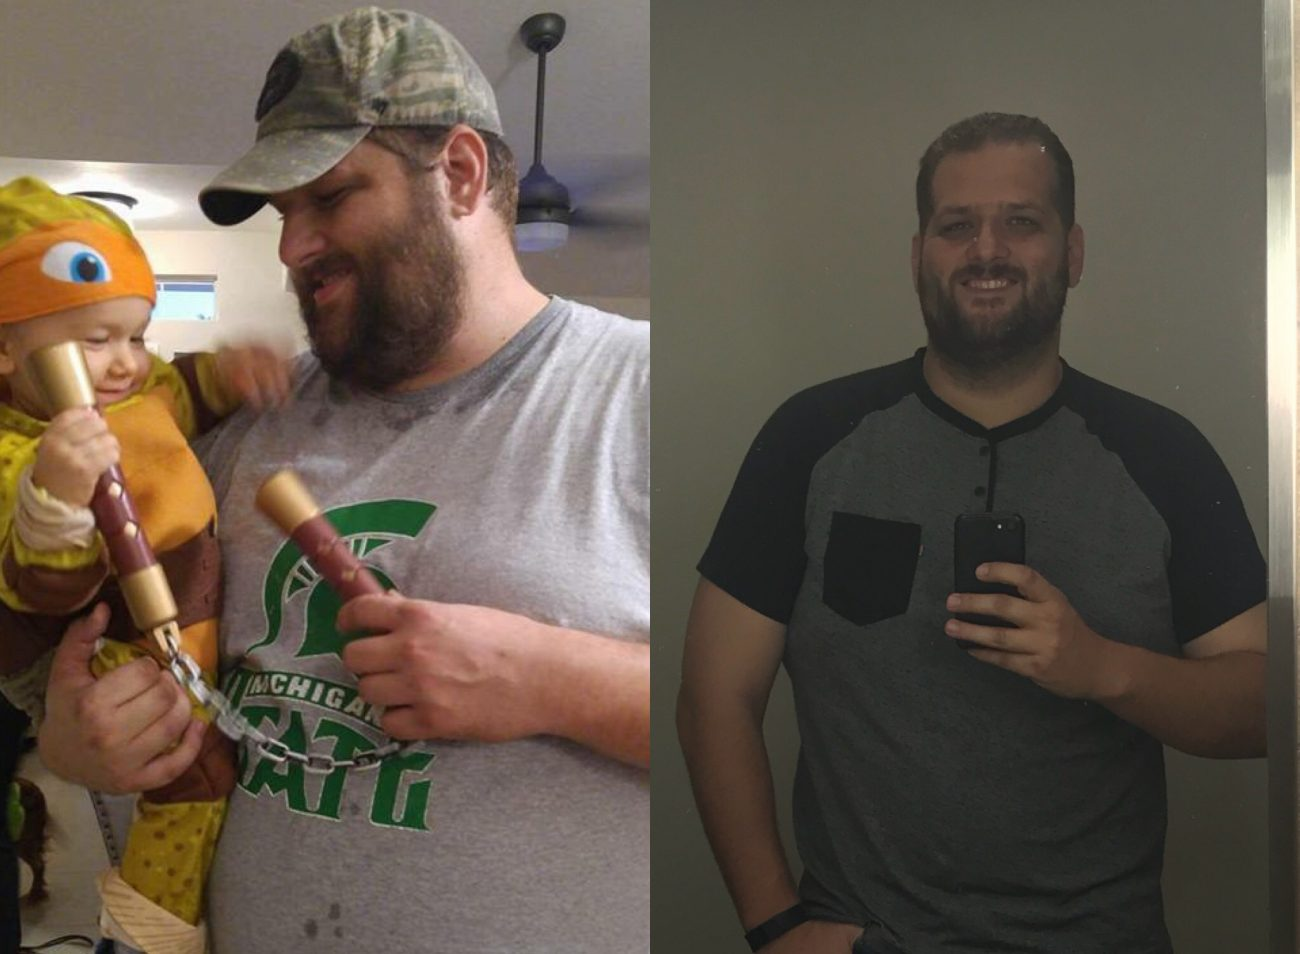 the keto guy